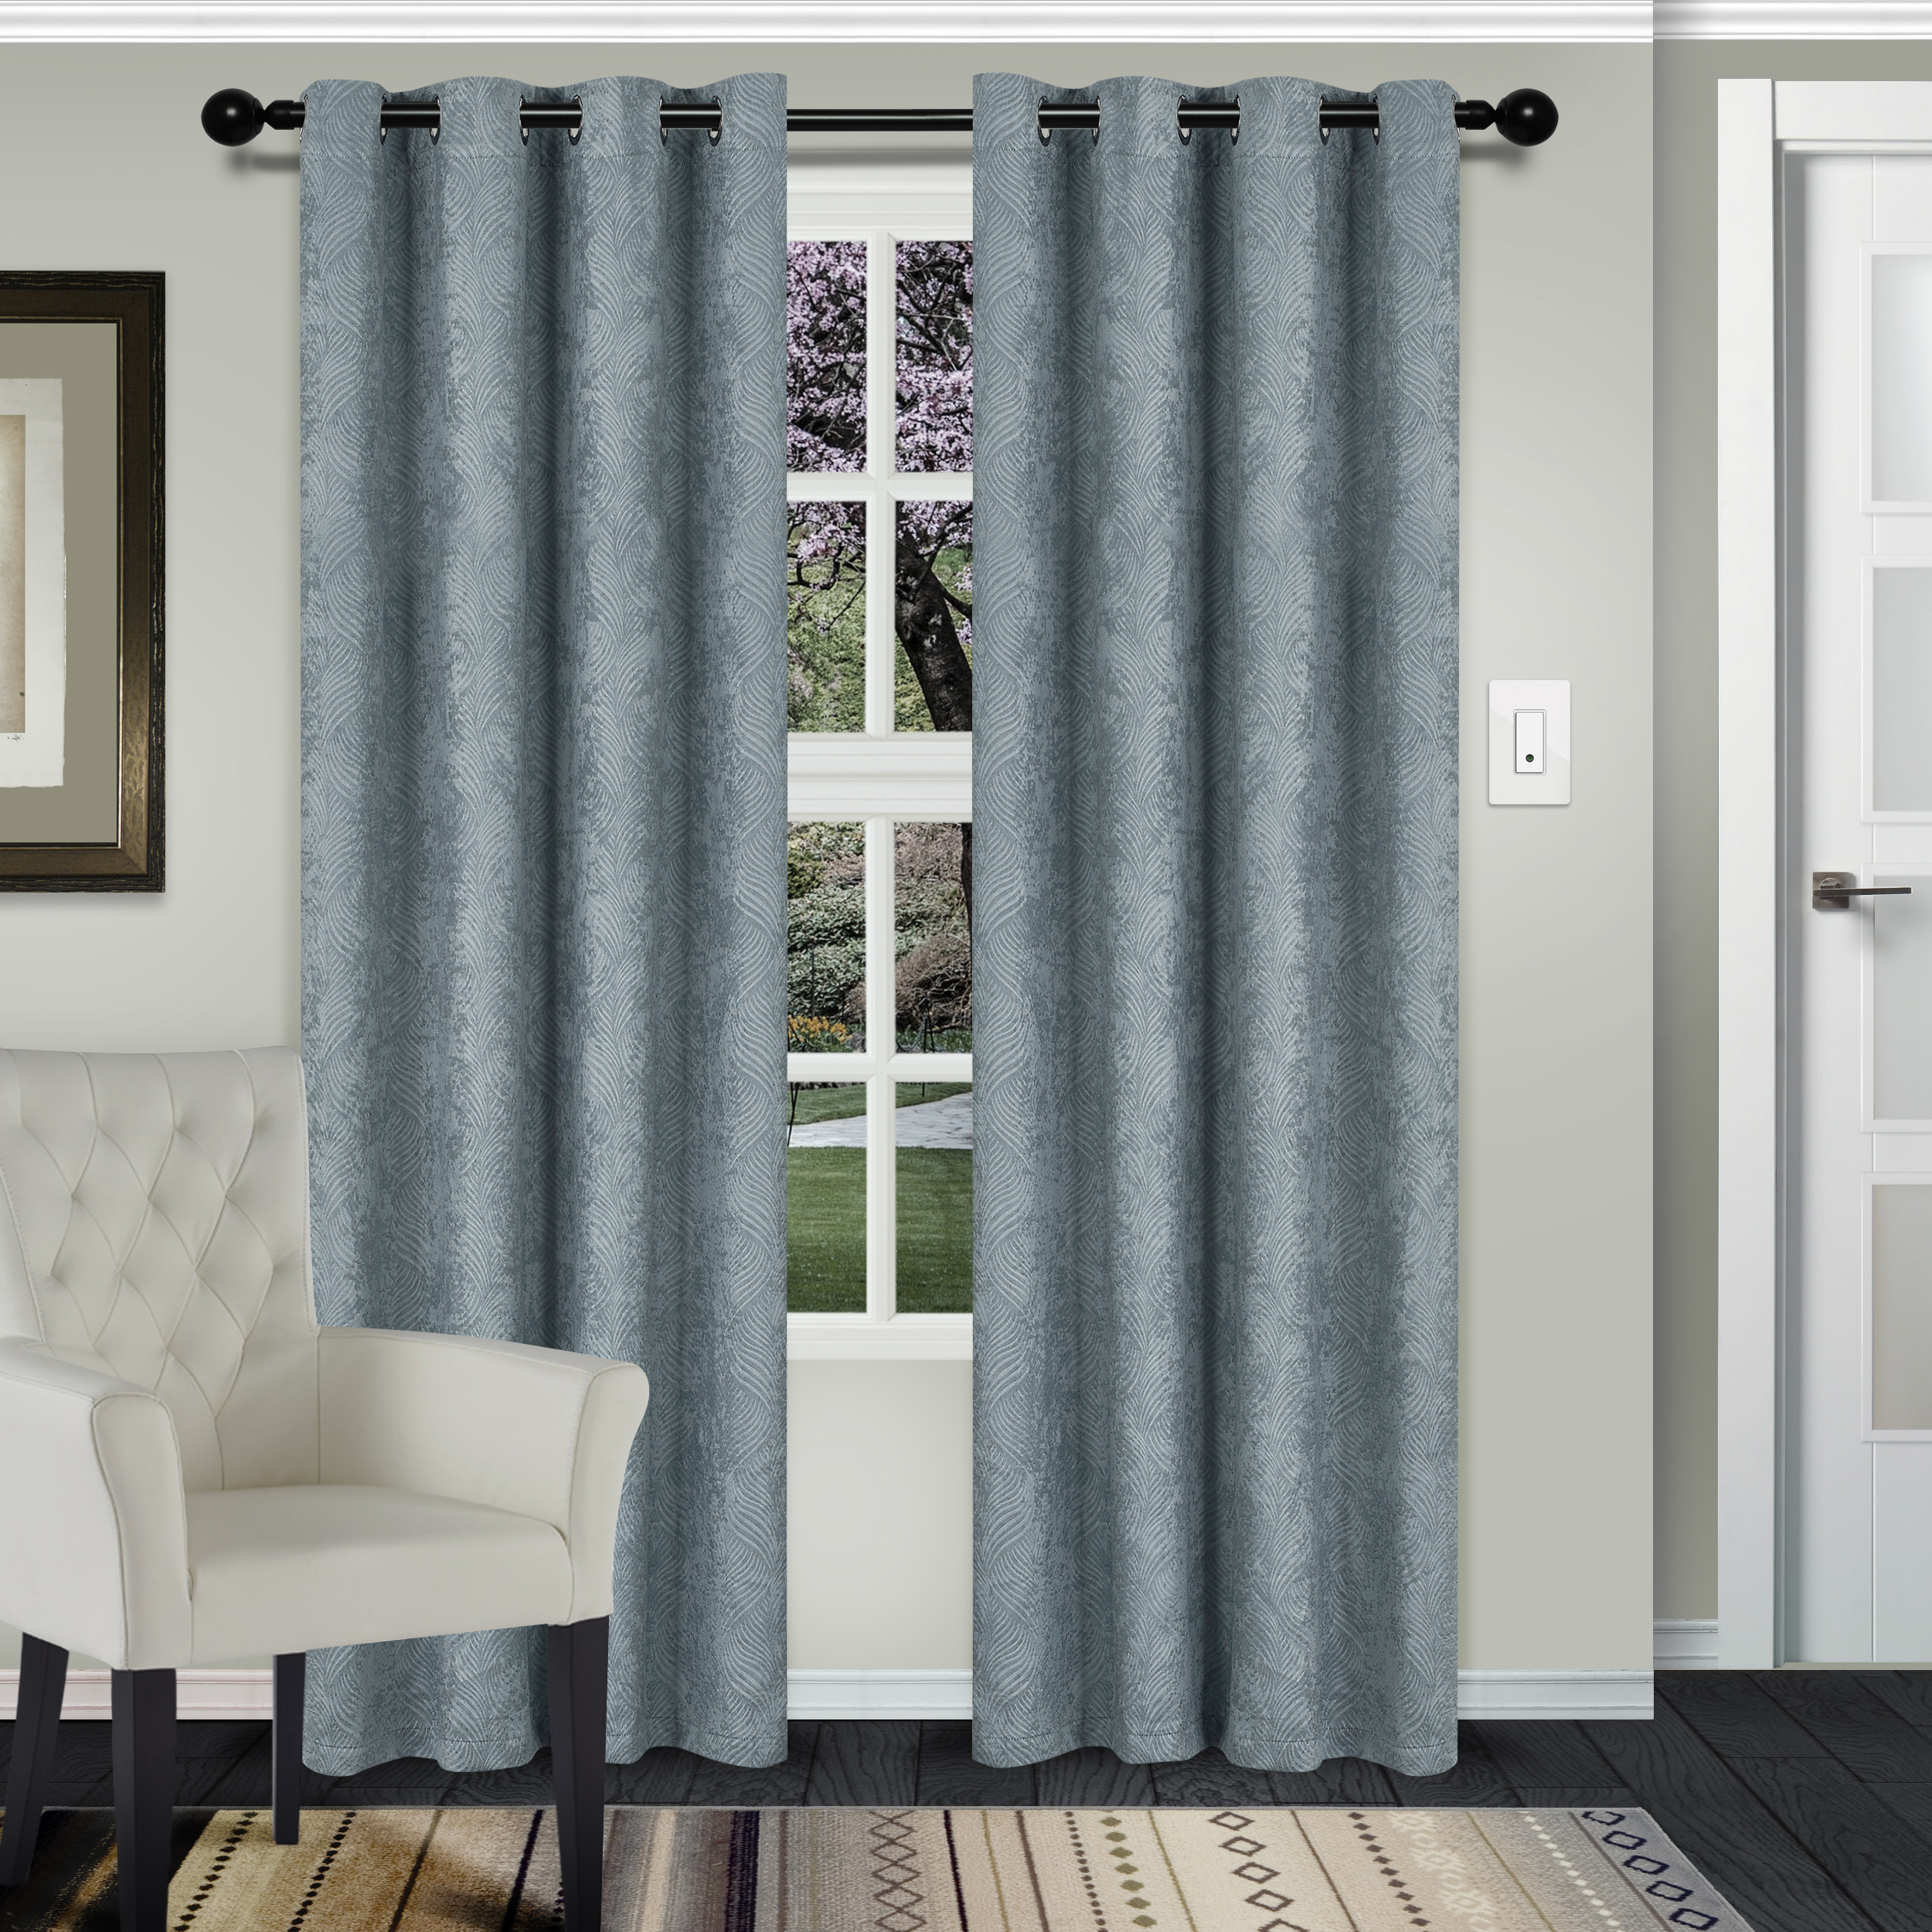 Recent Superior Waverly Textured Blackout Curtain Set Of 2, Thermal In Superior Solid Insulated Thermal Blackout Grommet Curtain Panel Pairs (View 6 of 20)